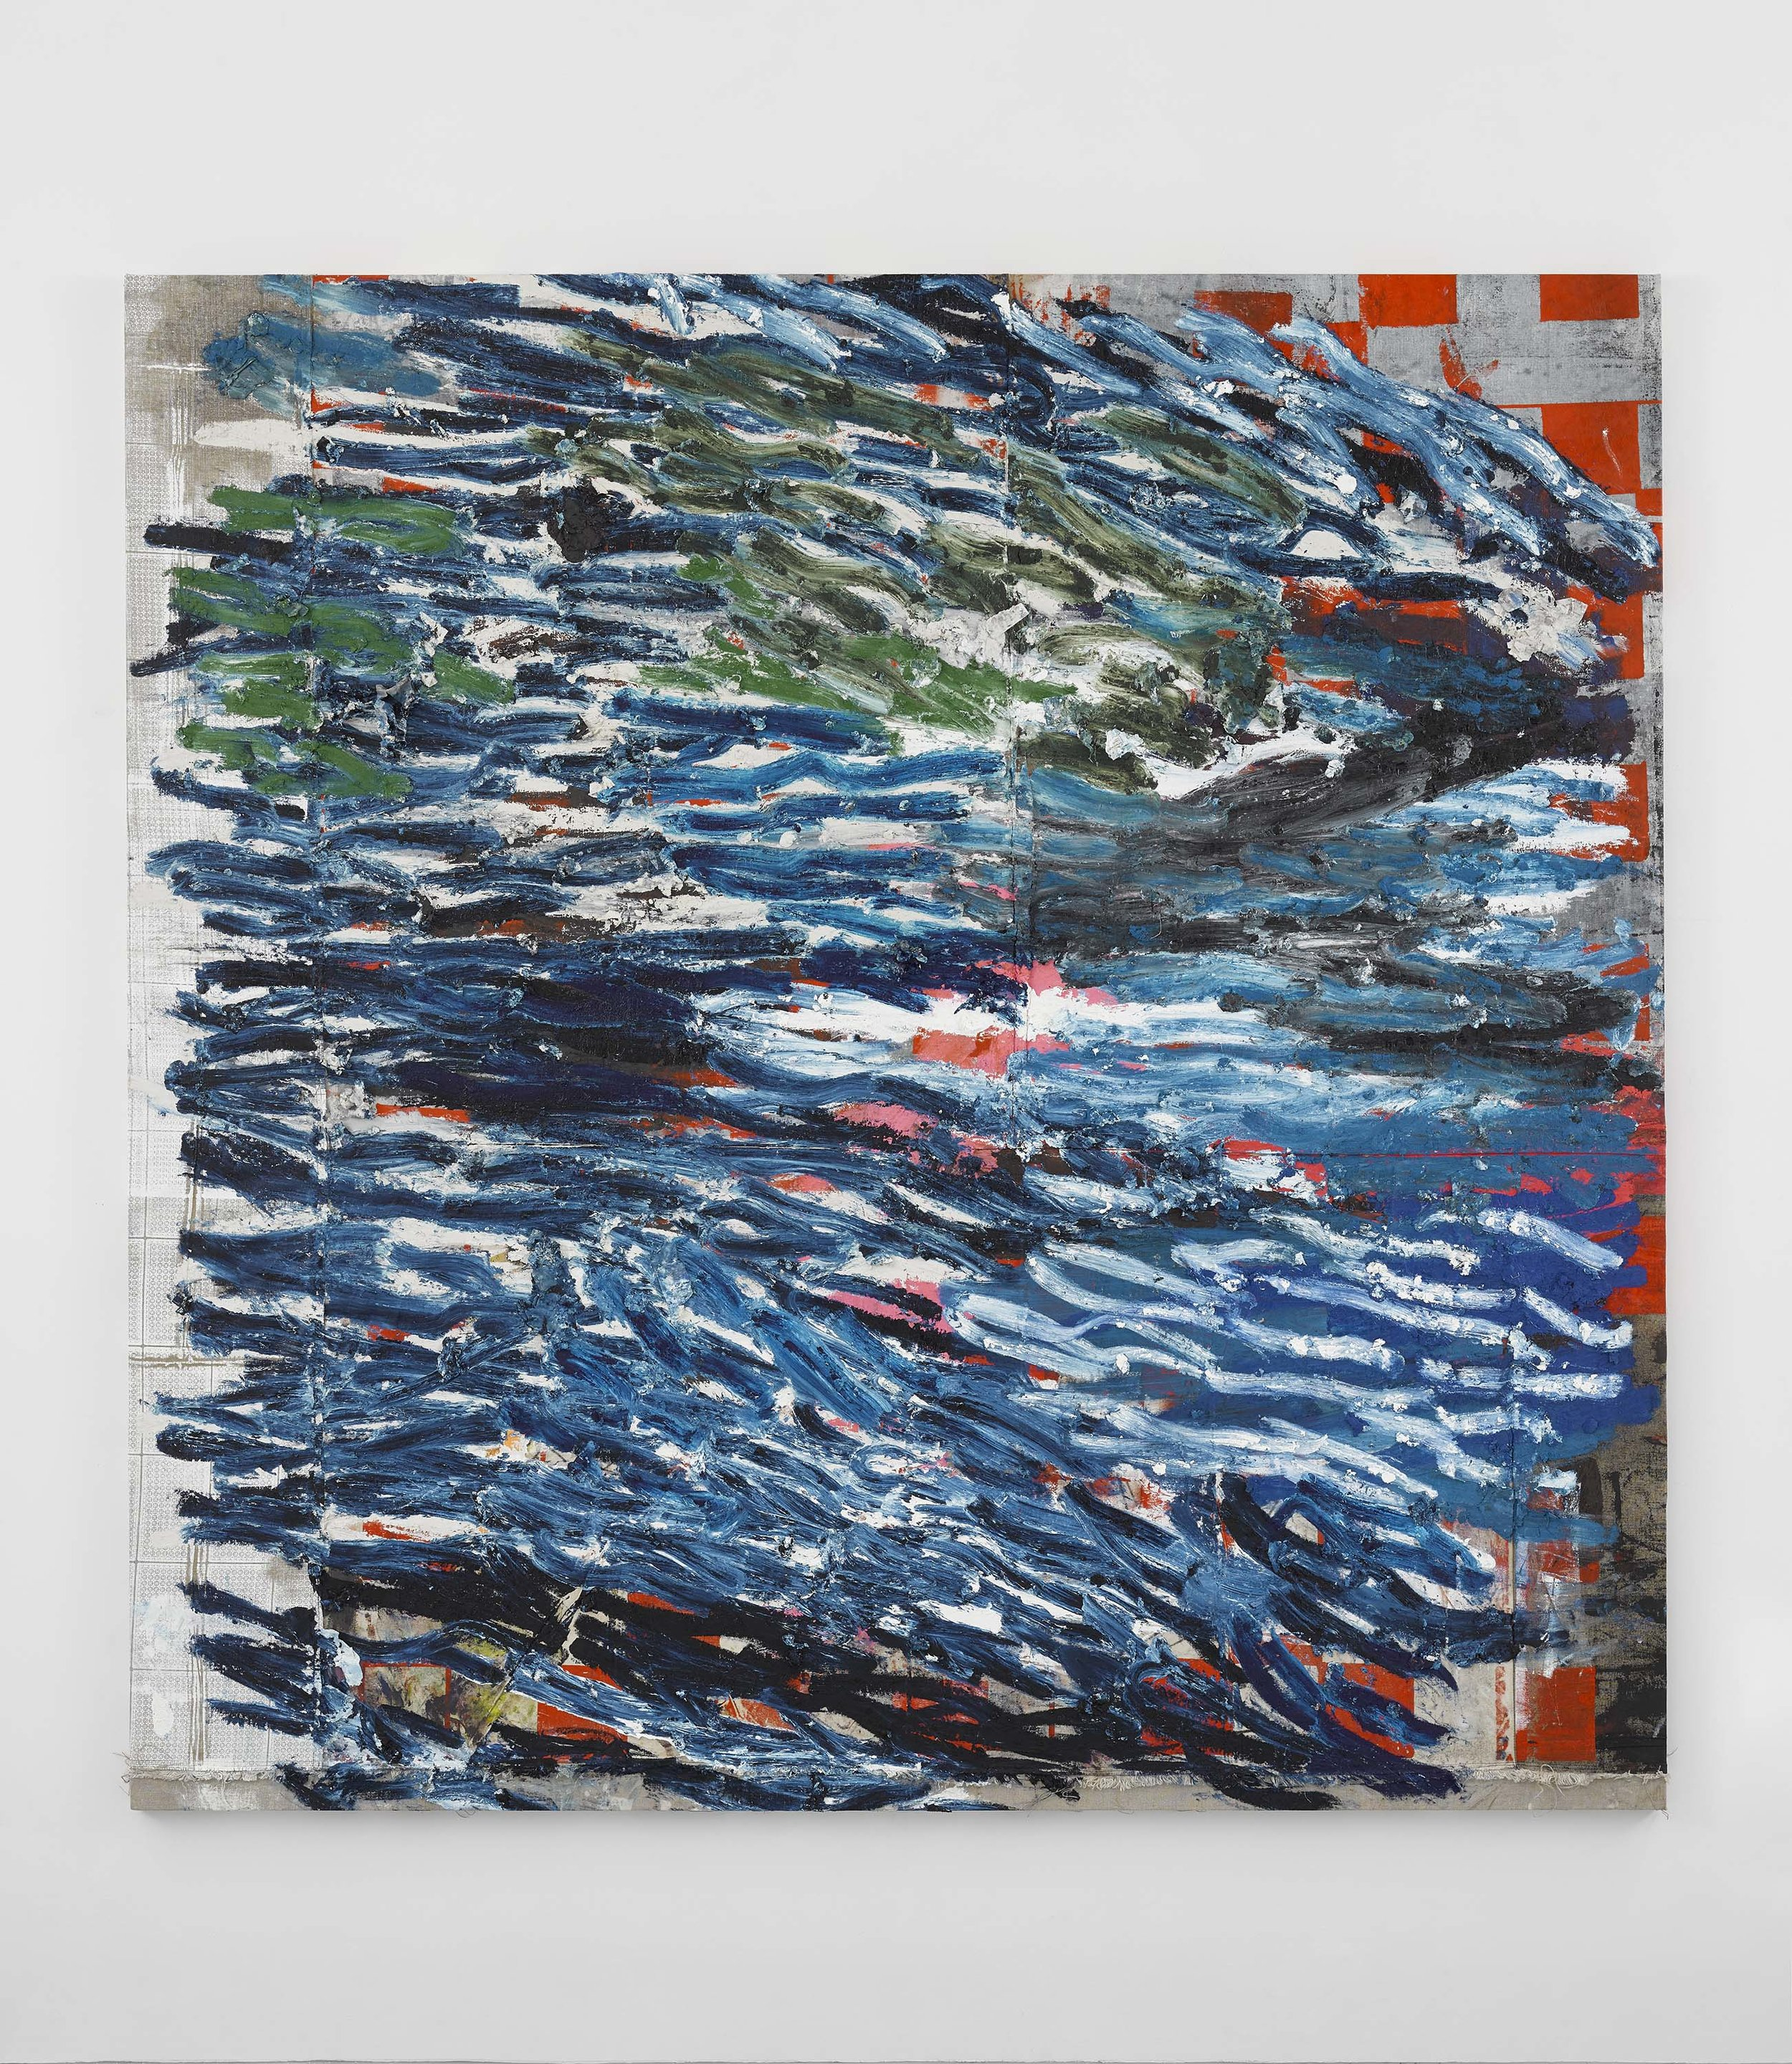 Oscar Murillo,   (untitled) surge , 2017-2019, Oil and oil stick on canvas and linen, 90 1/2 x 90 1/2 inches, 230 x 230 cm